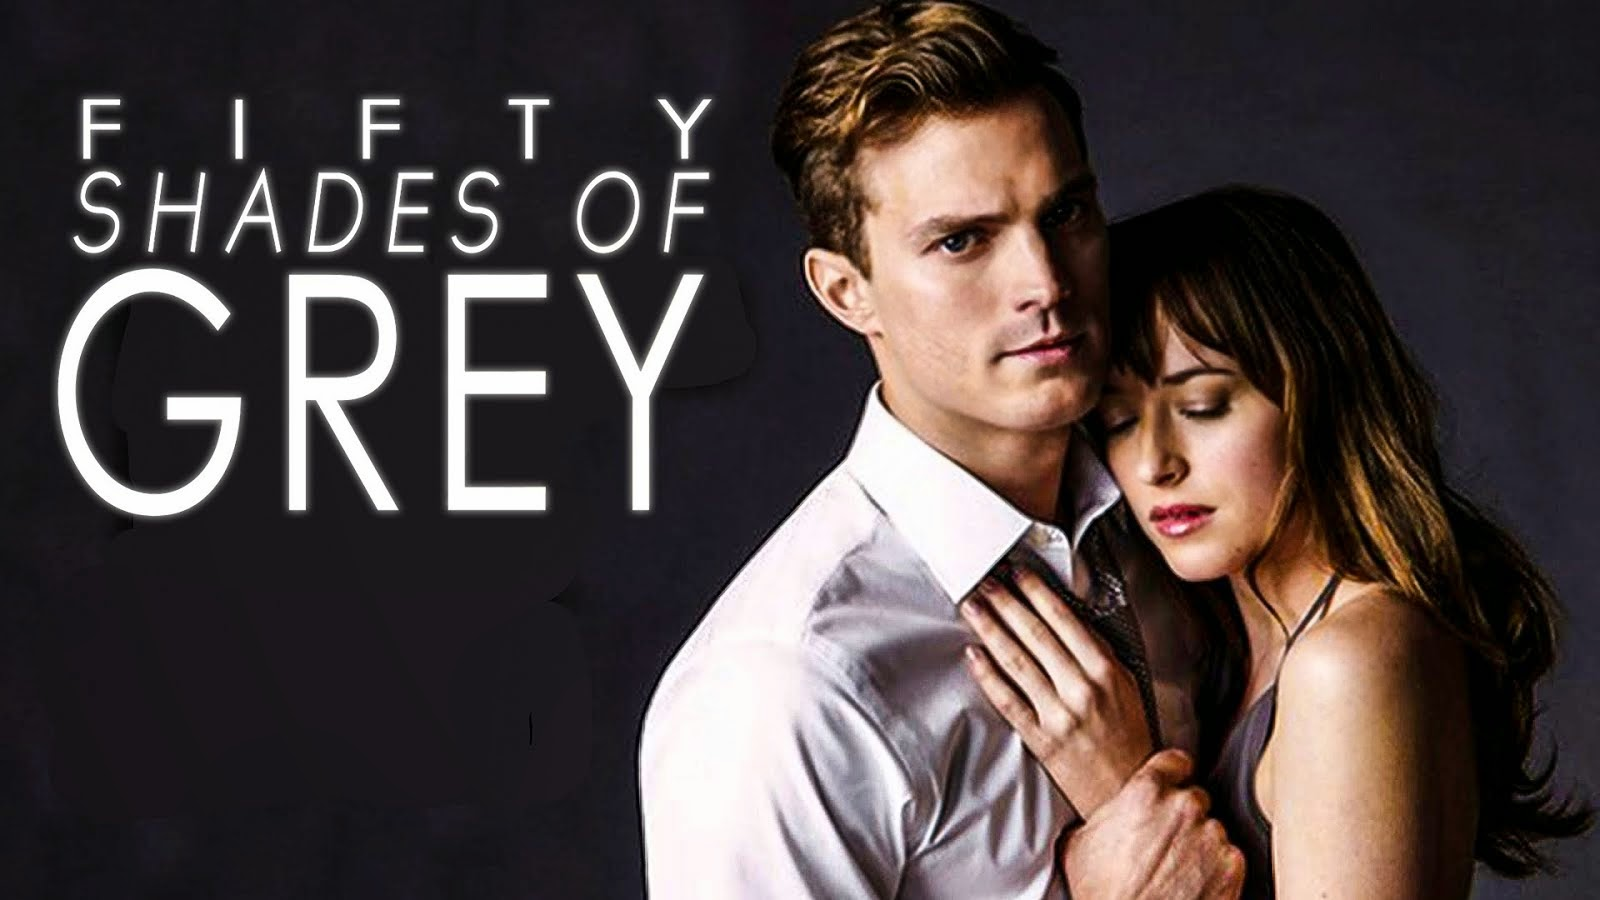 fifty shades of grey full movie download 2015 welcome